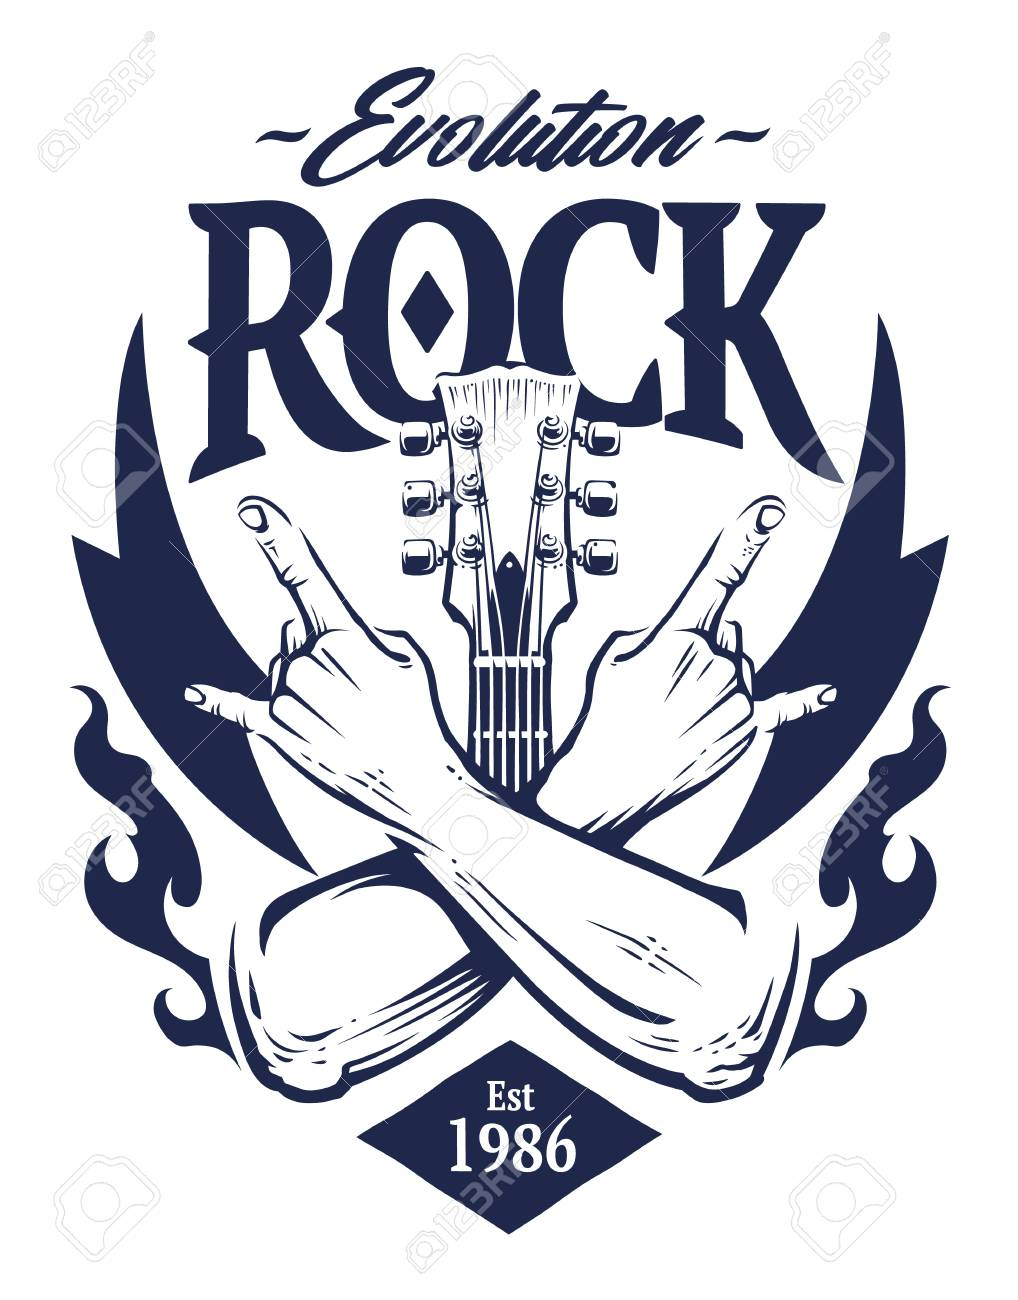 Vector emblem with crossed hands sign rock n roll gesture, guitar neck and flames. Monochrome rock emblem template. - 102550118